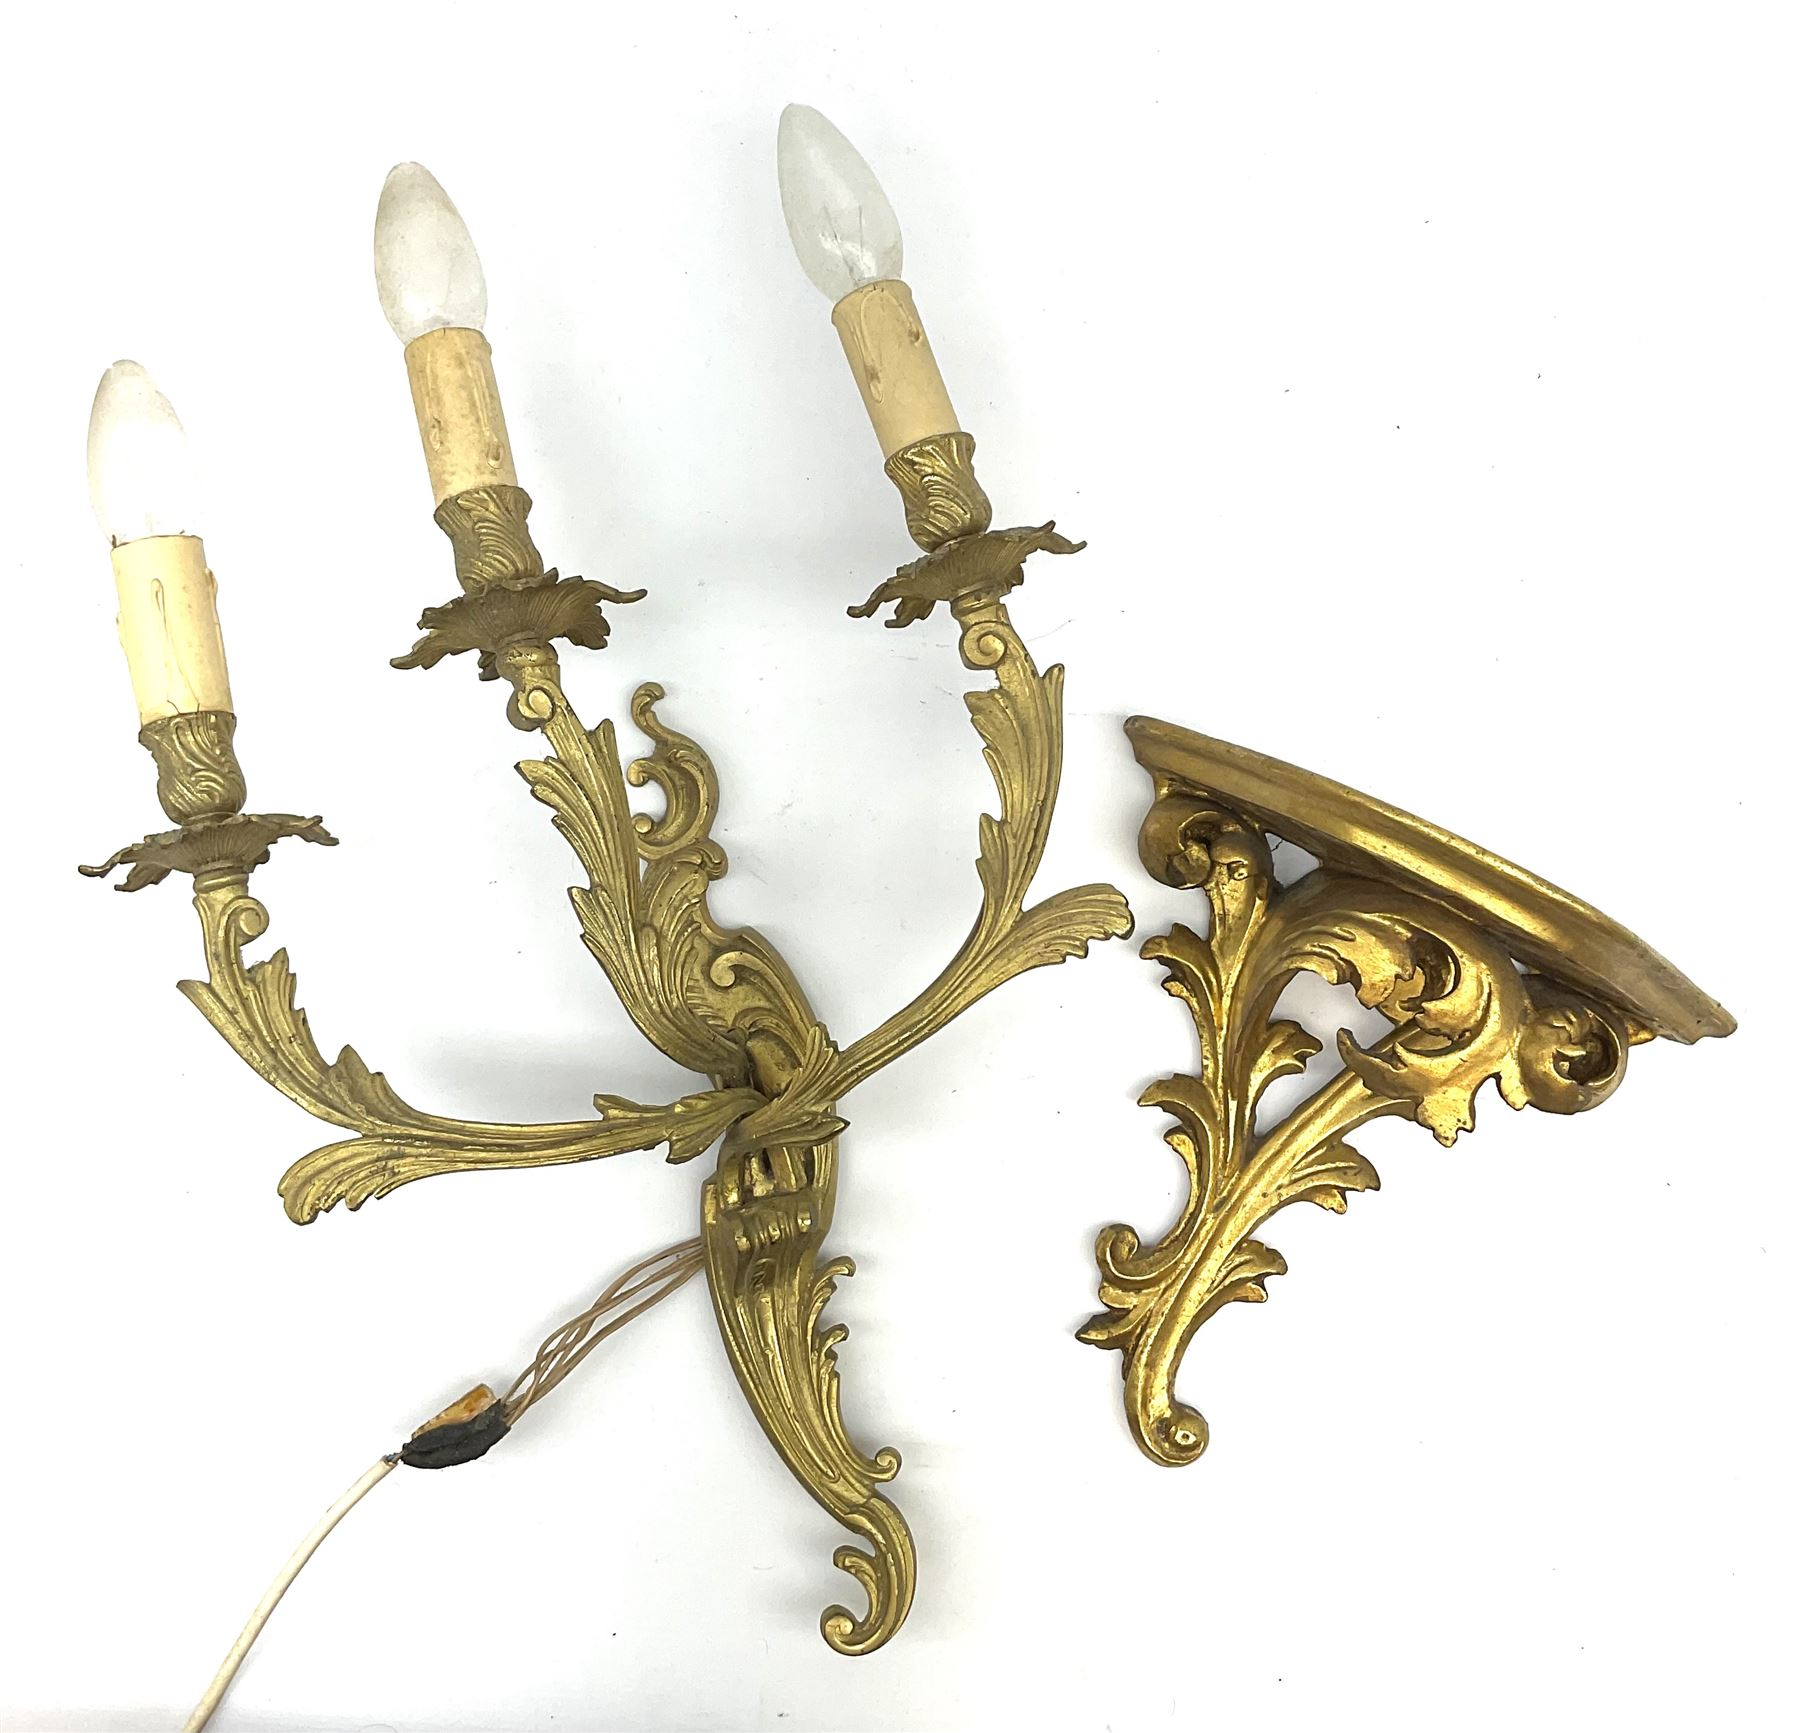 A Rococo style gilt metal three branch wall sconce wall light